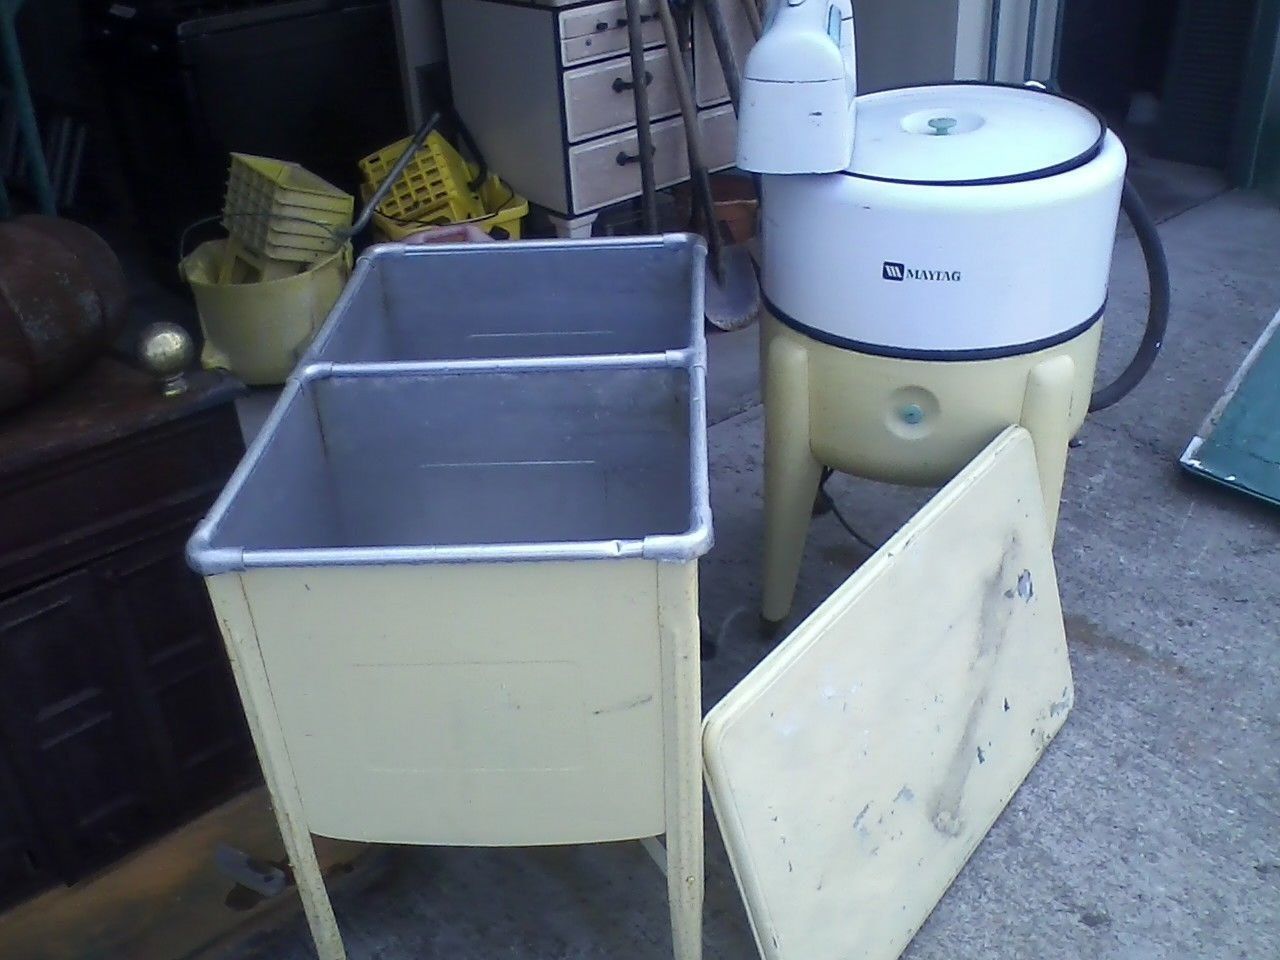 Galvanized Aluminum Double Wash Tub W Top Vintage Rare Ebay Wash Tubs Galvanized Wash Tub Tub